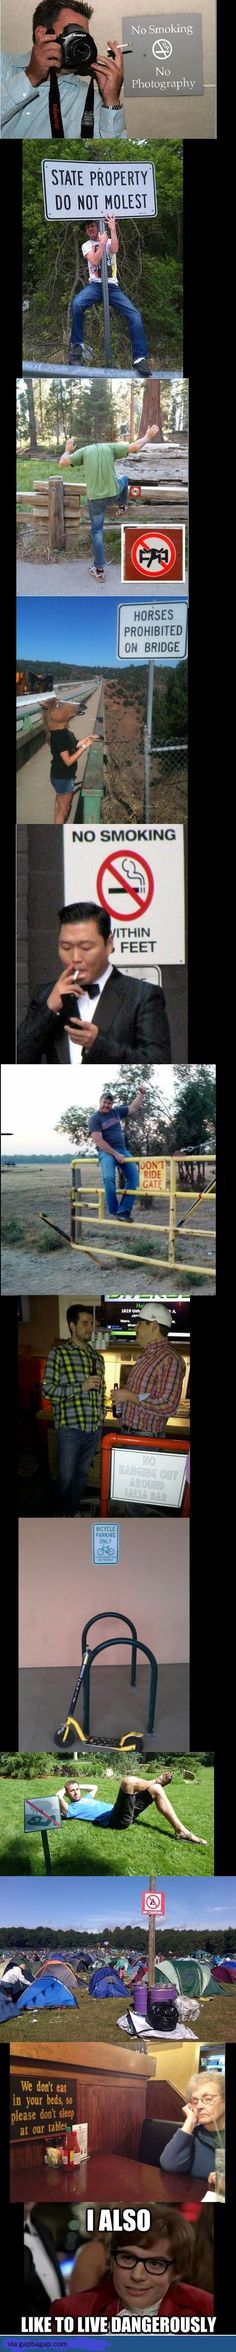 Funny Pictures Of Live Dangerously